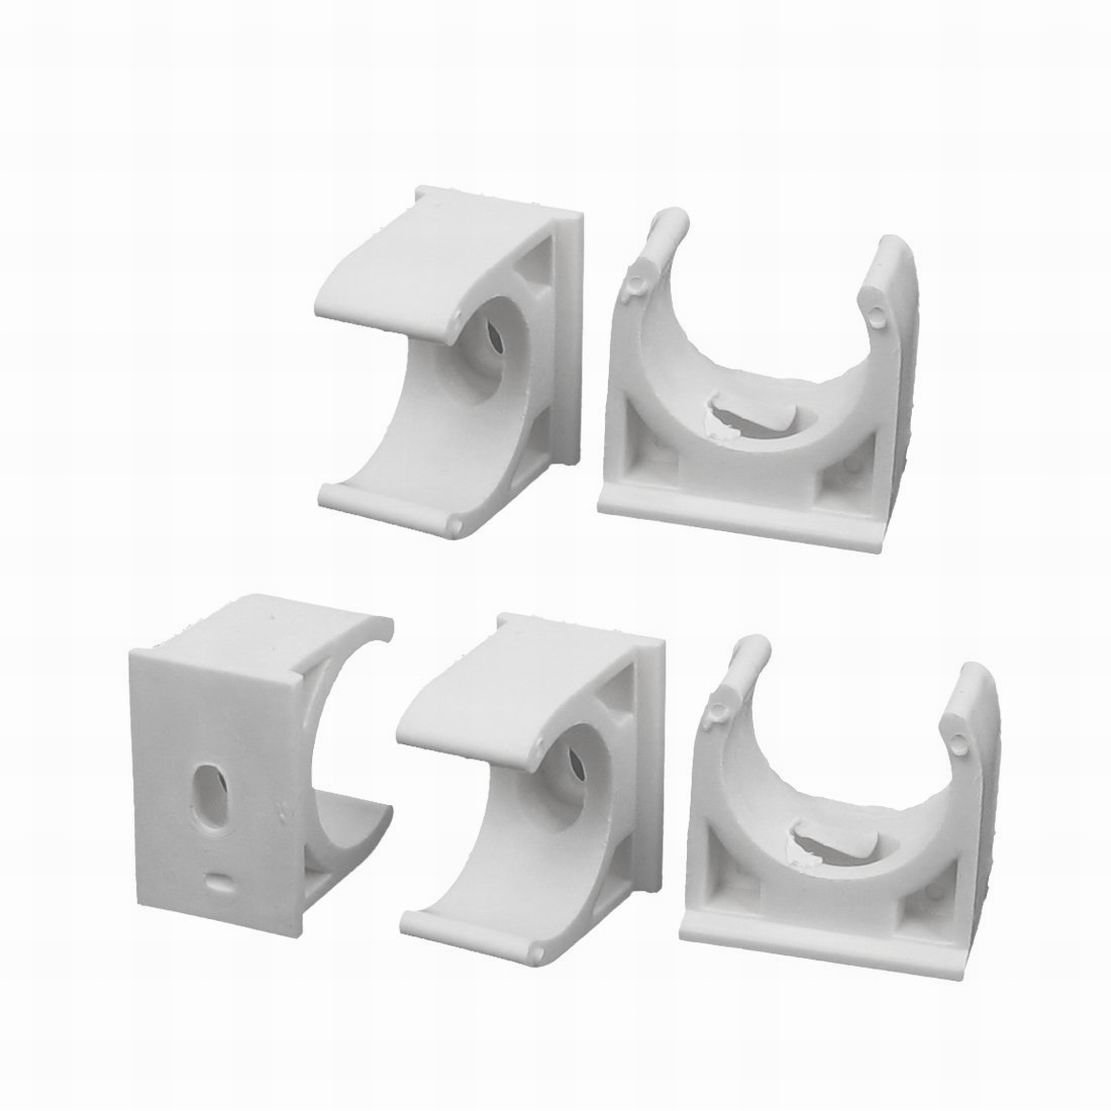 PVC Pipe or EMT Conduit Clamp Row Cover Clips for Greenhouse Plastic Shade Cloth Attachment 1//2 inch 10 Pack Bootstrap Farmer Snap On Clamps